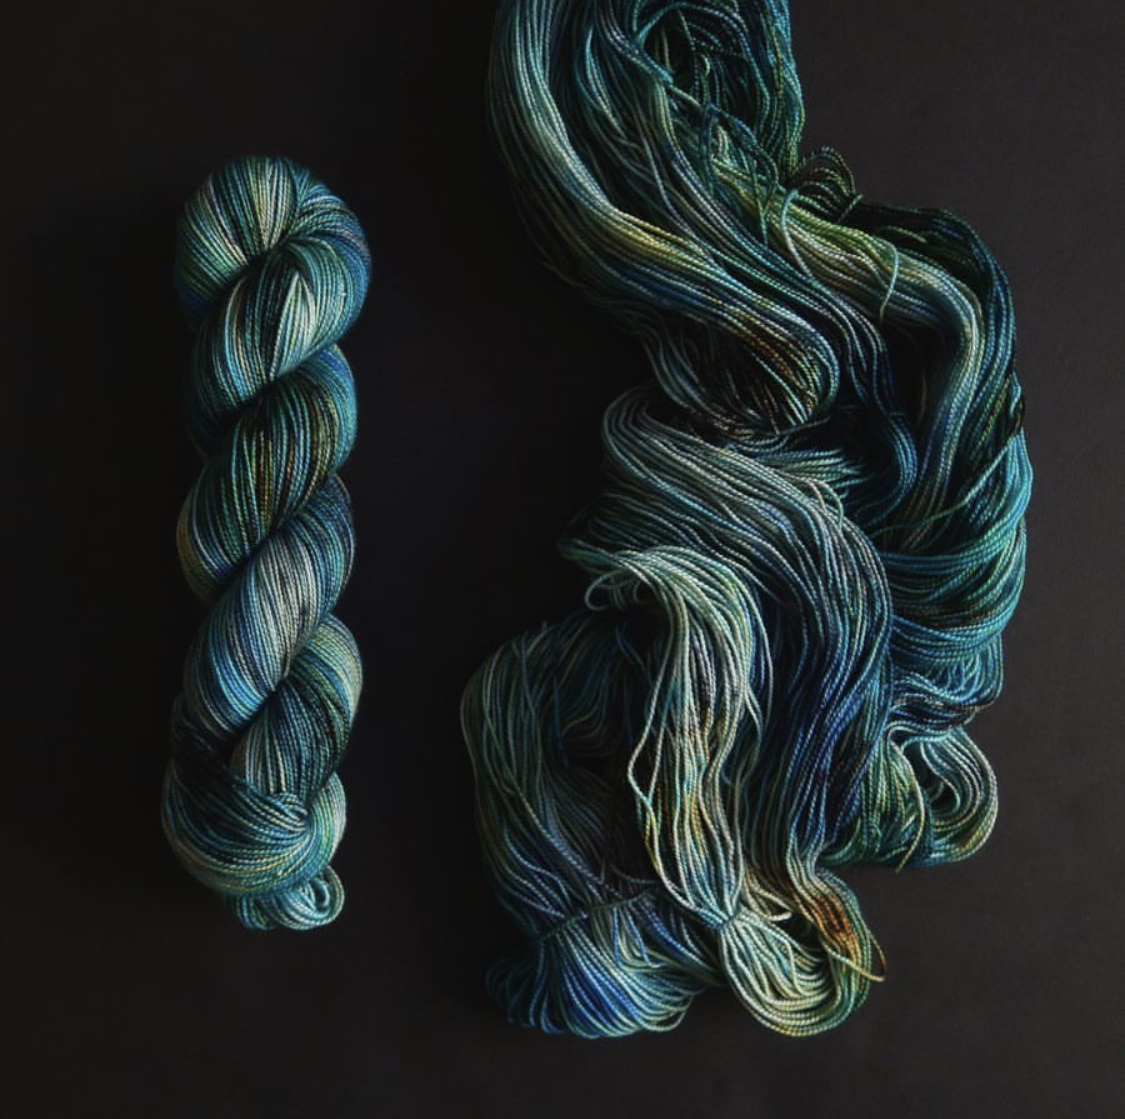 Two hanks of green & blue yarn sit side by side on a black background, one skeined and one unskeined; Photo by Tayler Earl of Fiber for the People®